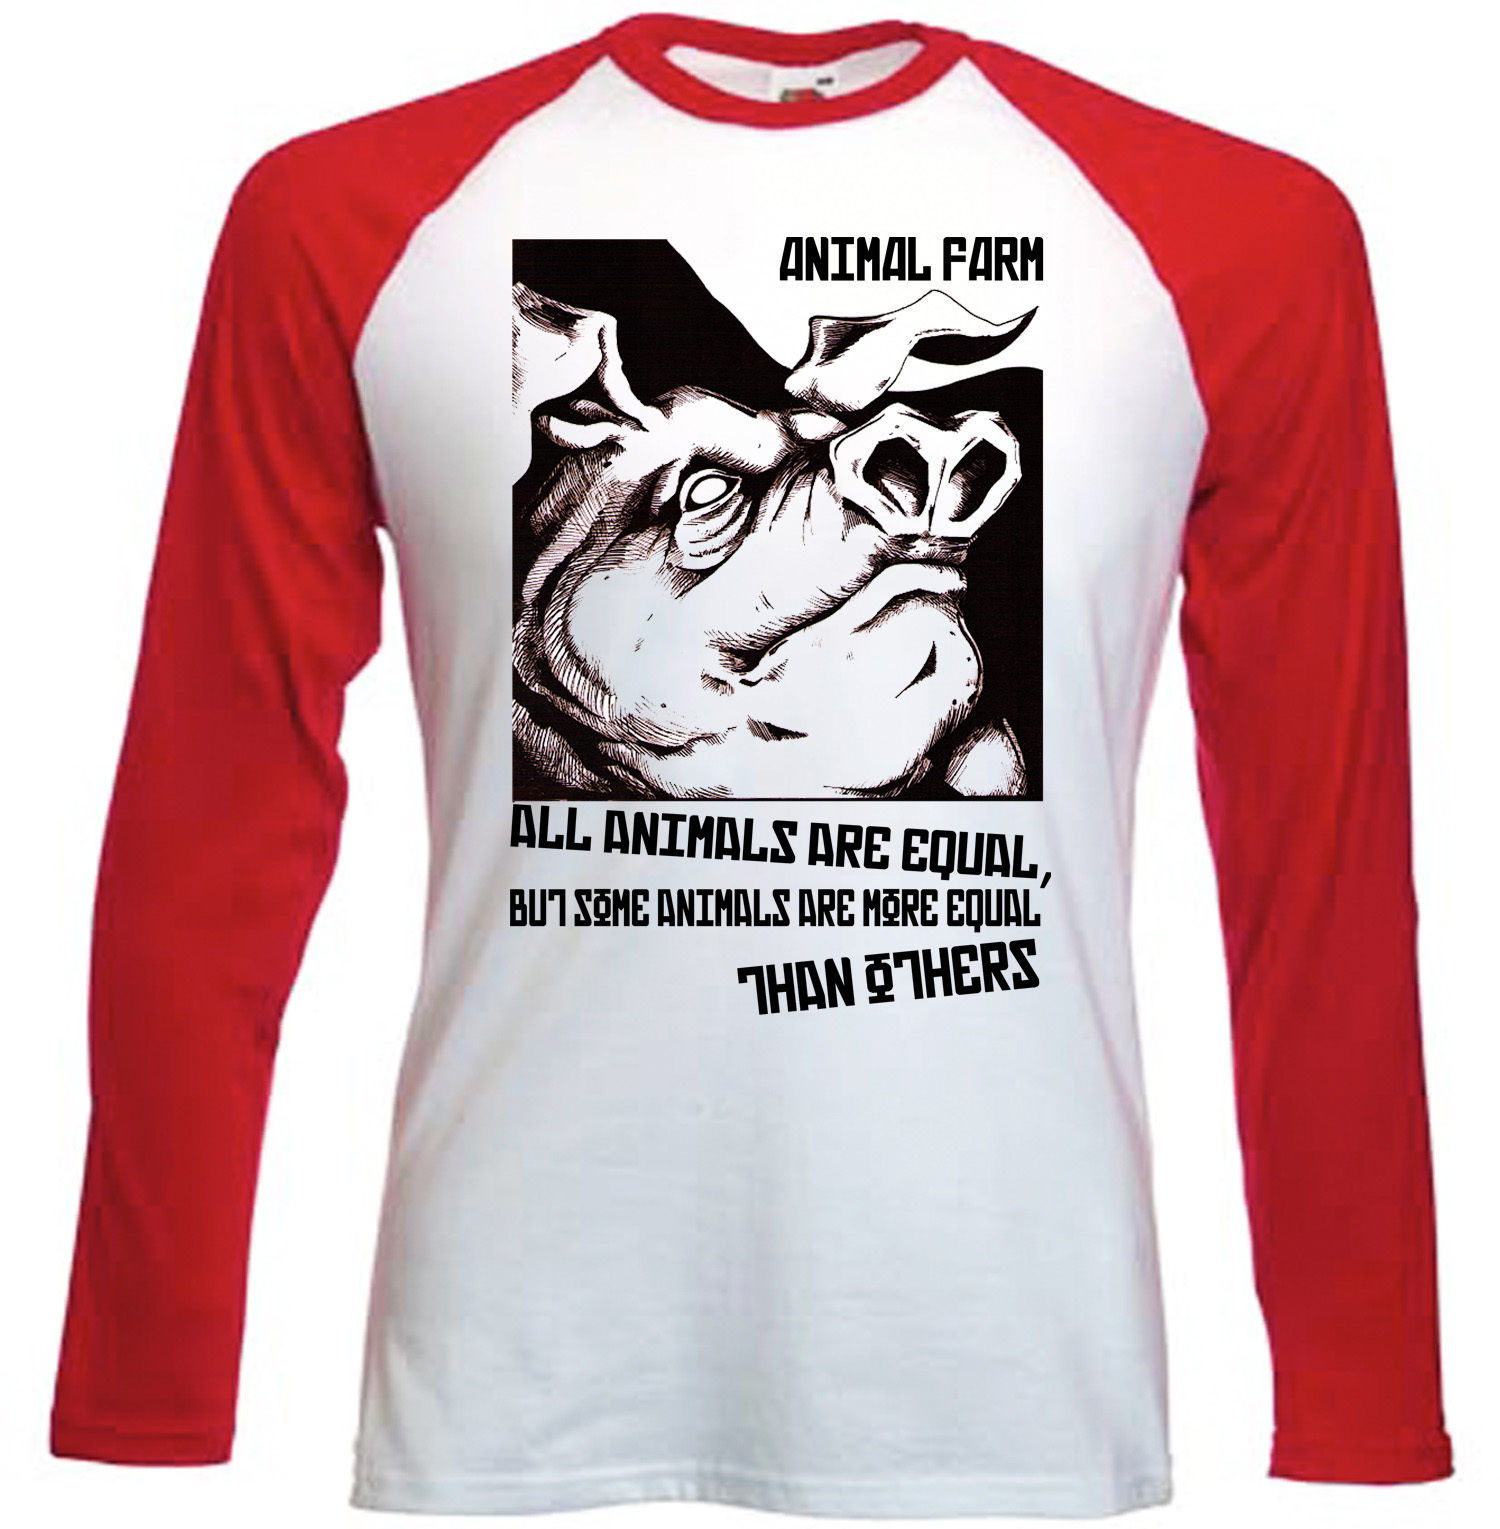 Primary image for ANIMAL FARM - GEORGE ORWEL - RED SLEEVED BASEBALL COTTON TSHIRT